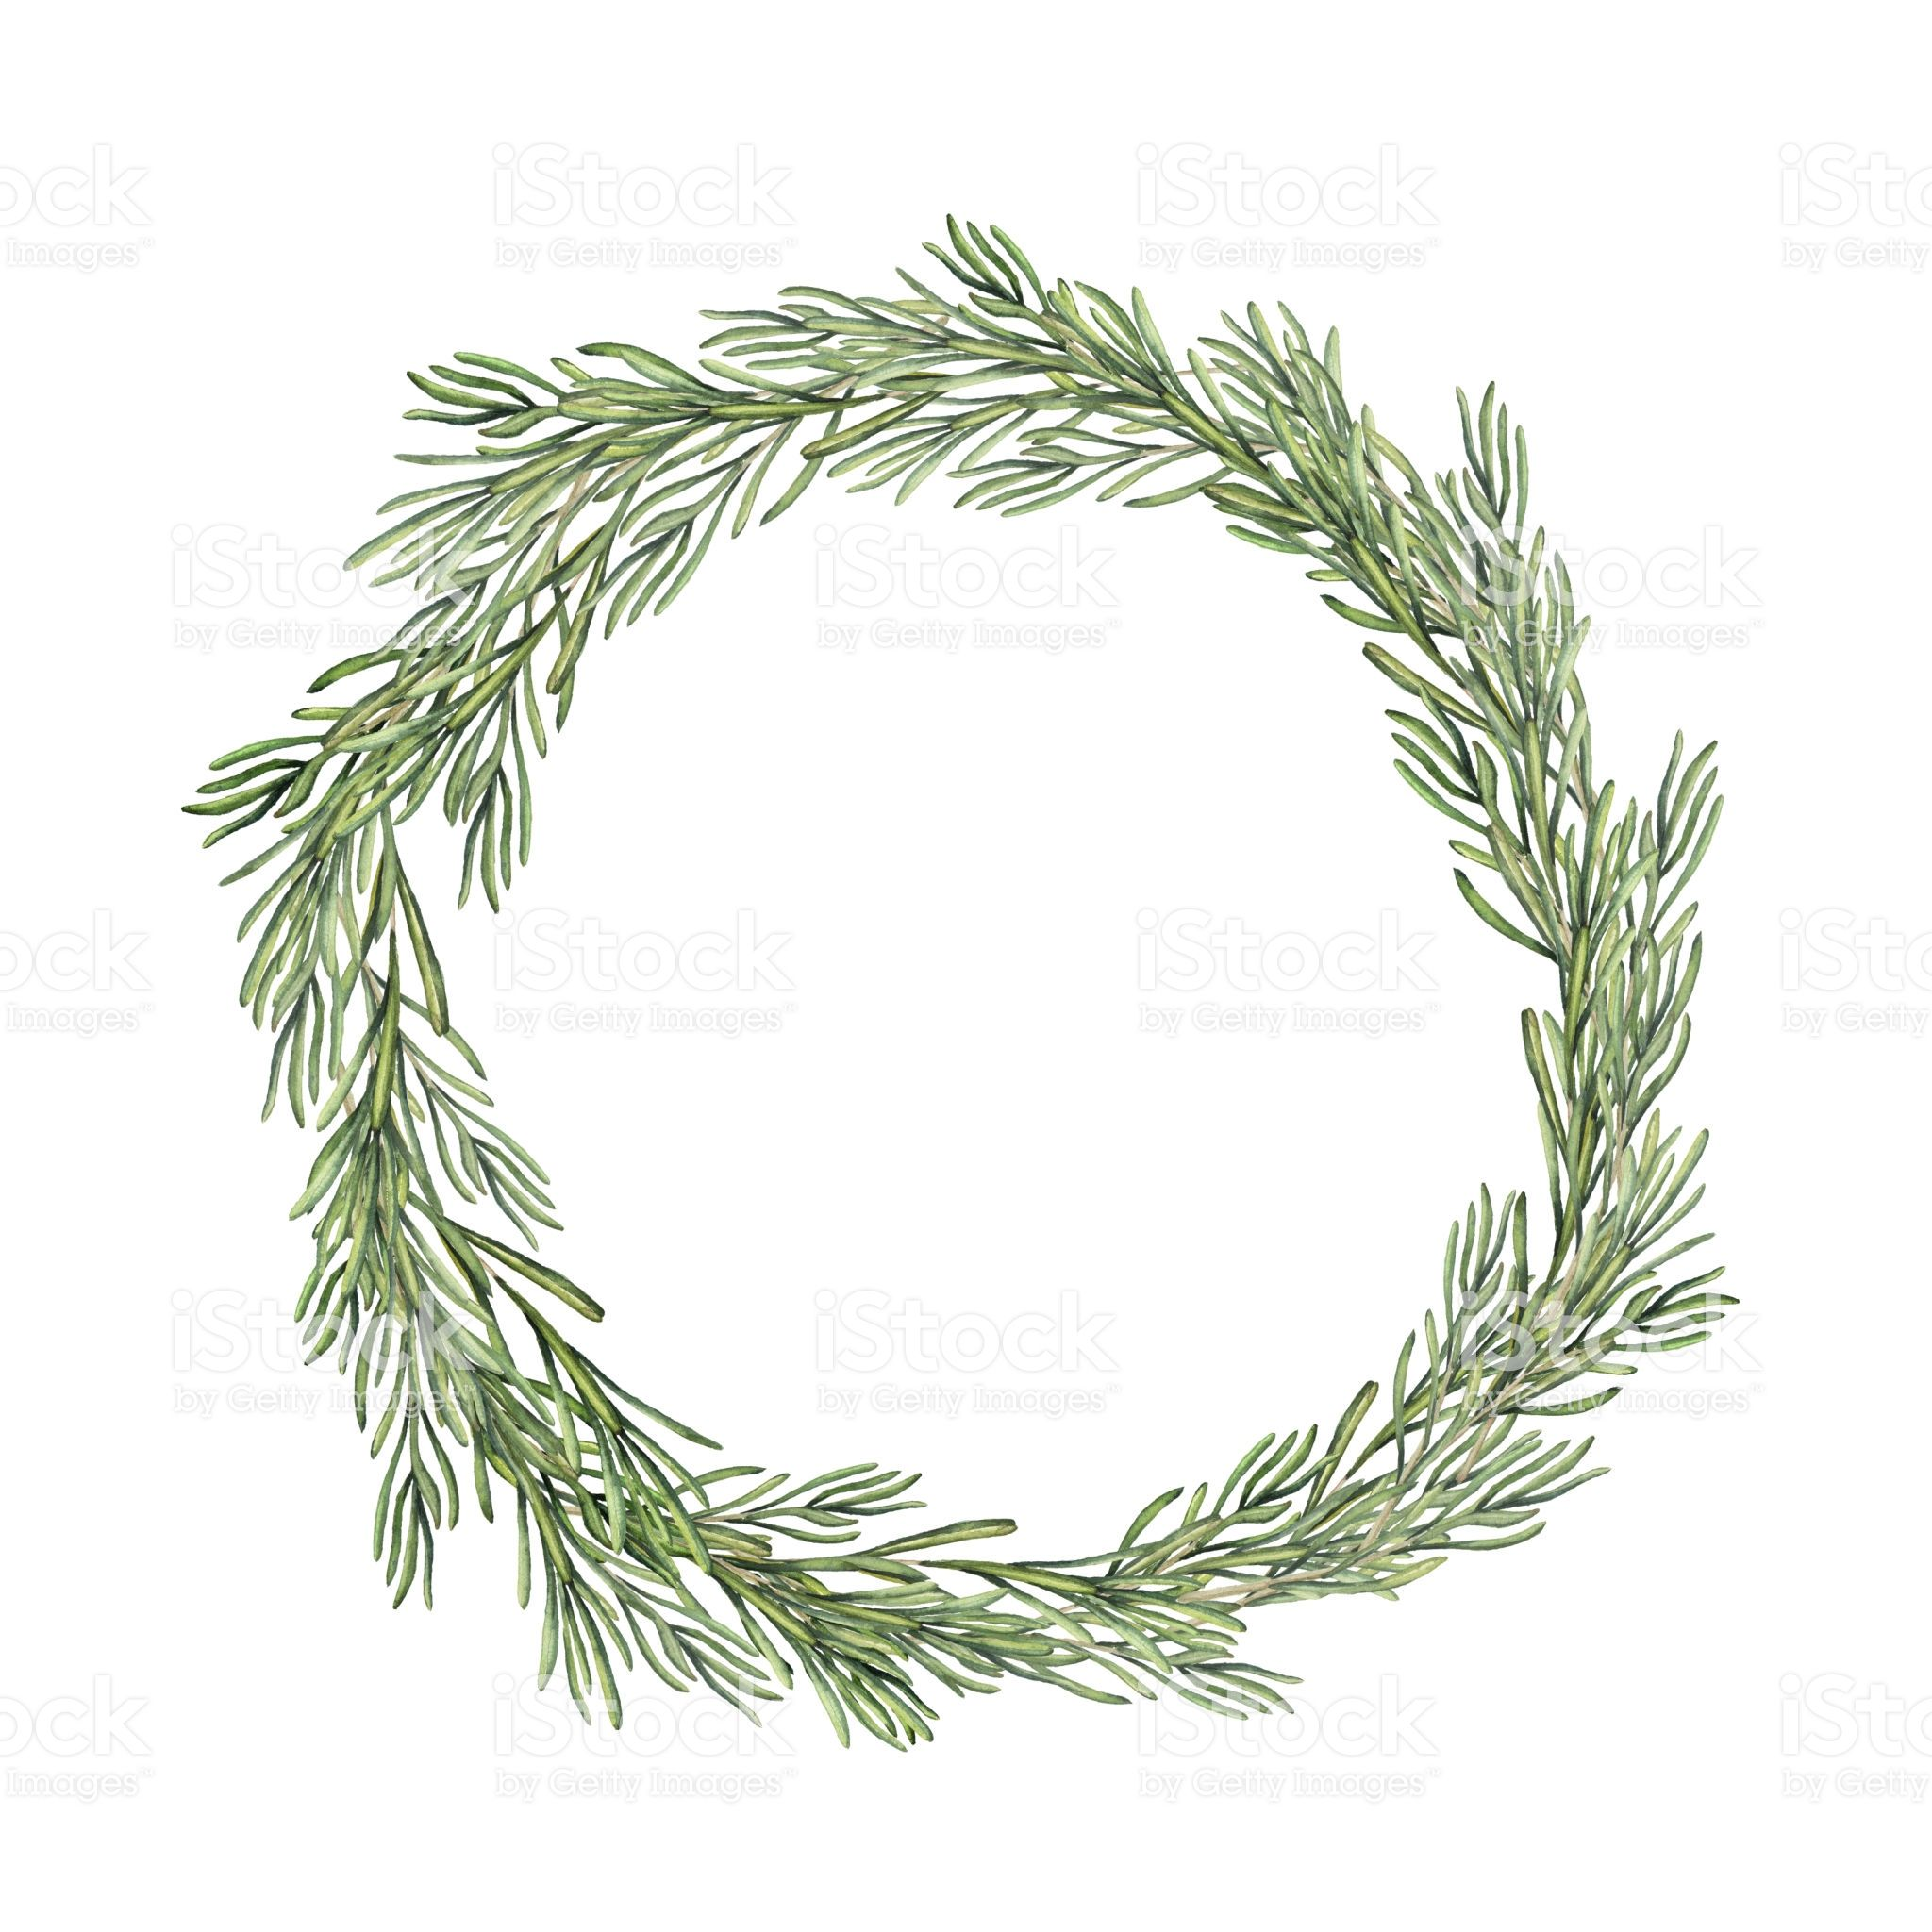 Watercolor Rosemary Wreath Hand Painted Rosemary Branch Isolated 2048x2048